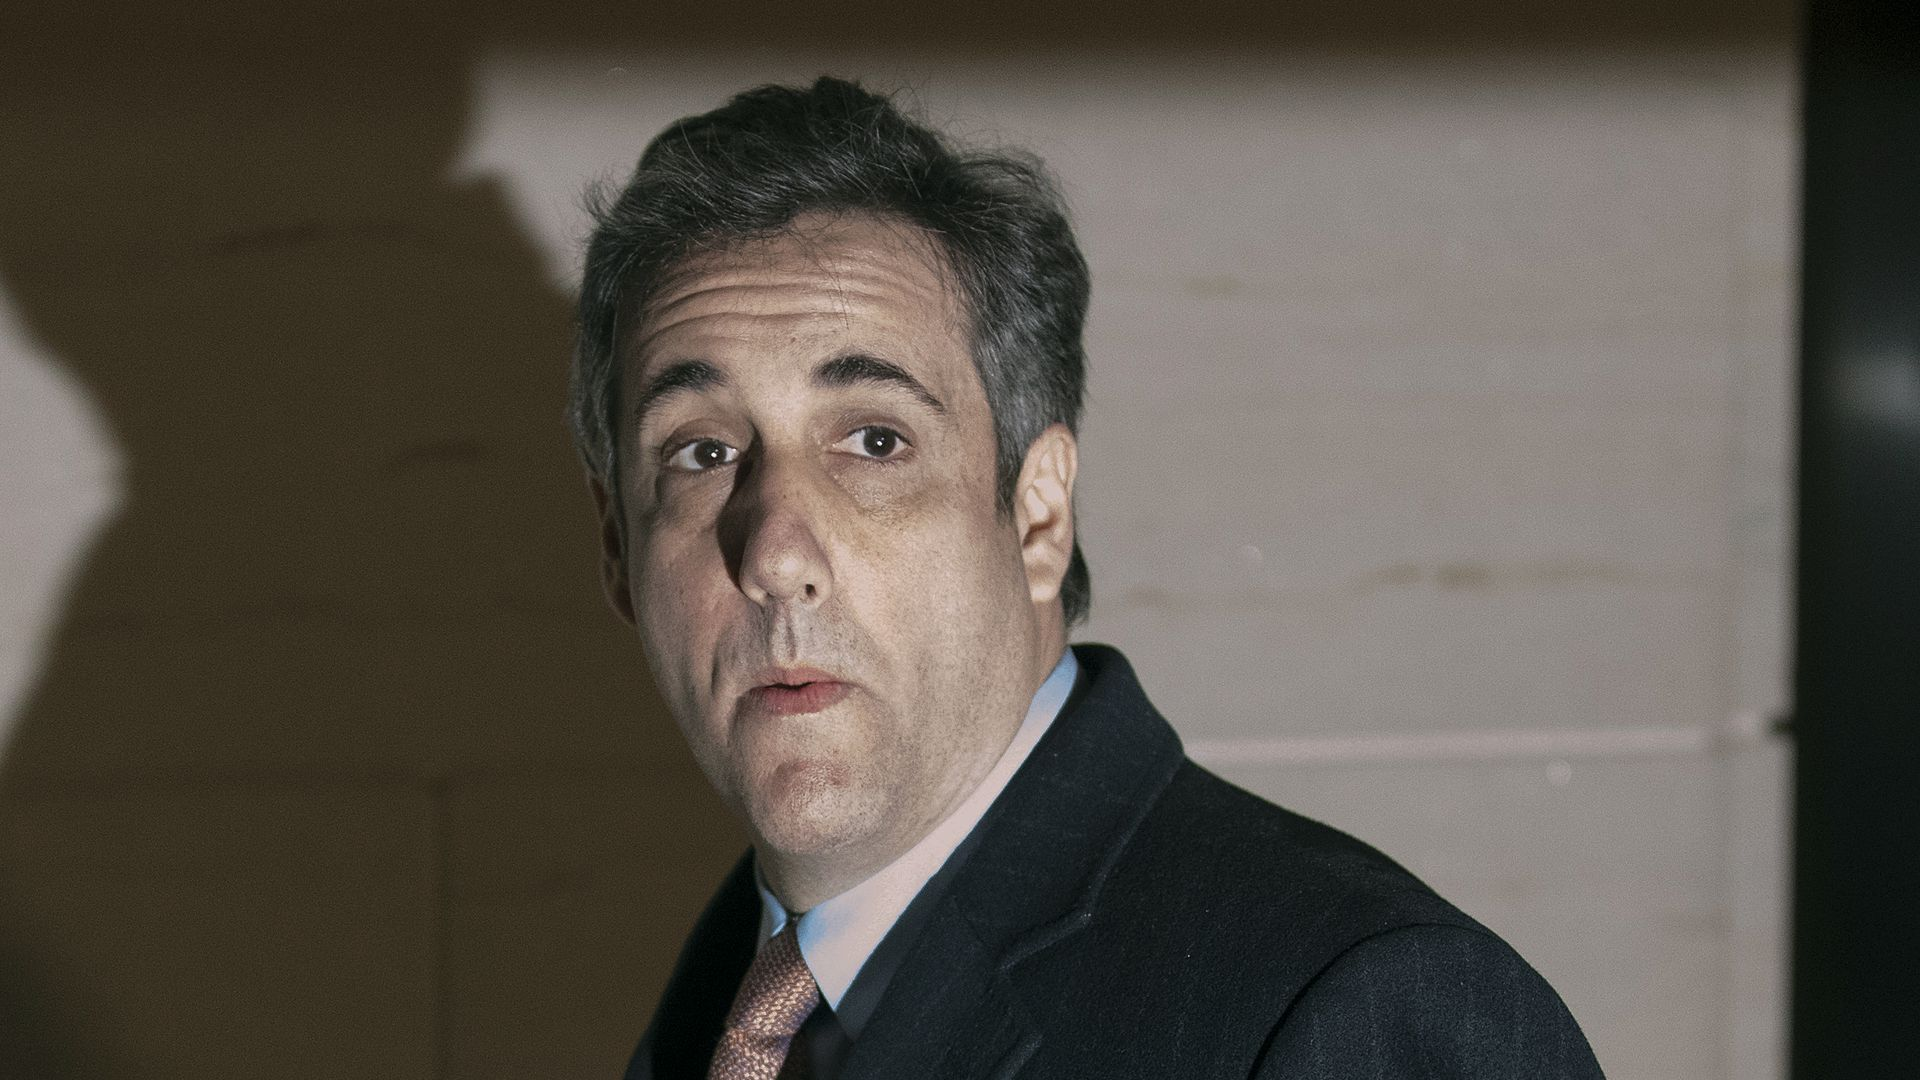 Cohen asked lawyer to discuss presidential pardon possibilities with Trump's attorneys: Report